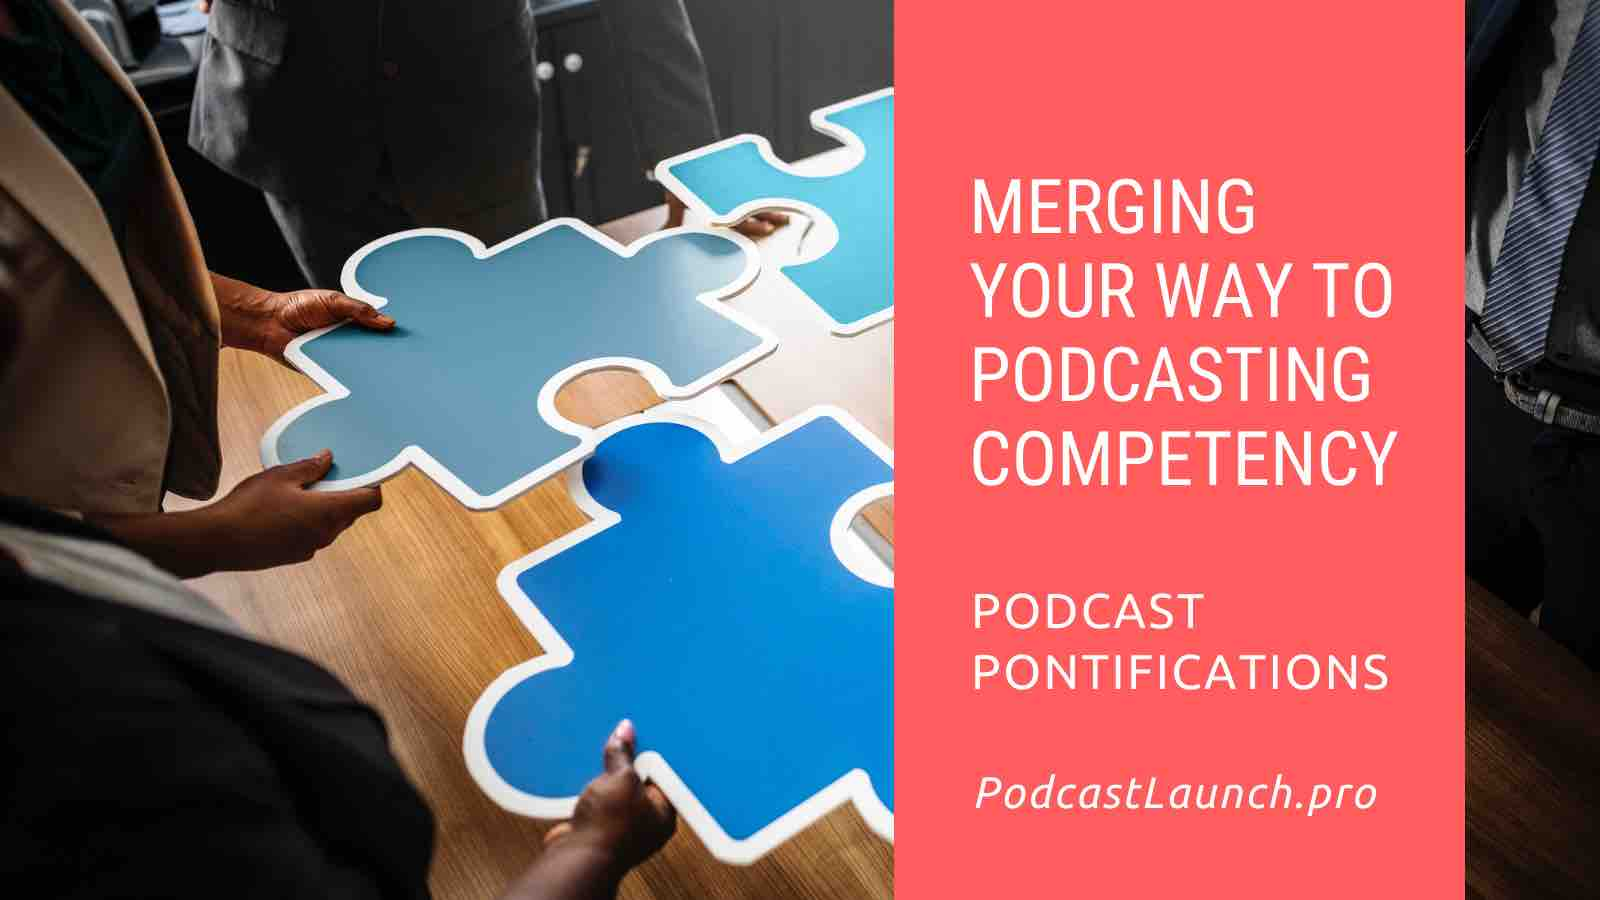 Merging Your Way To Podcasting Competency